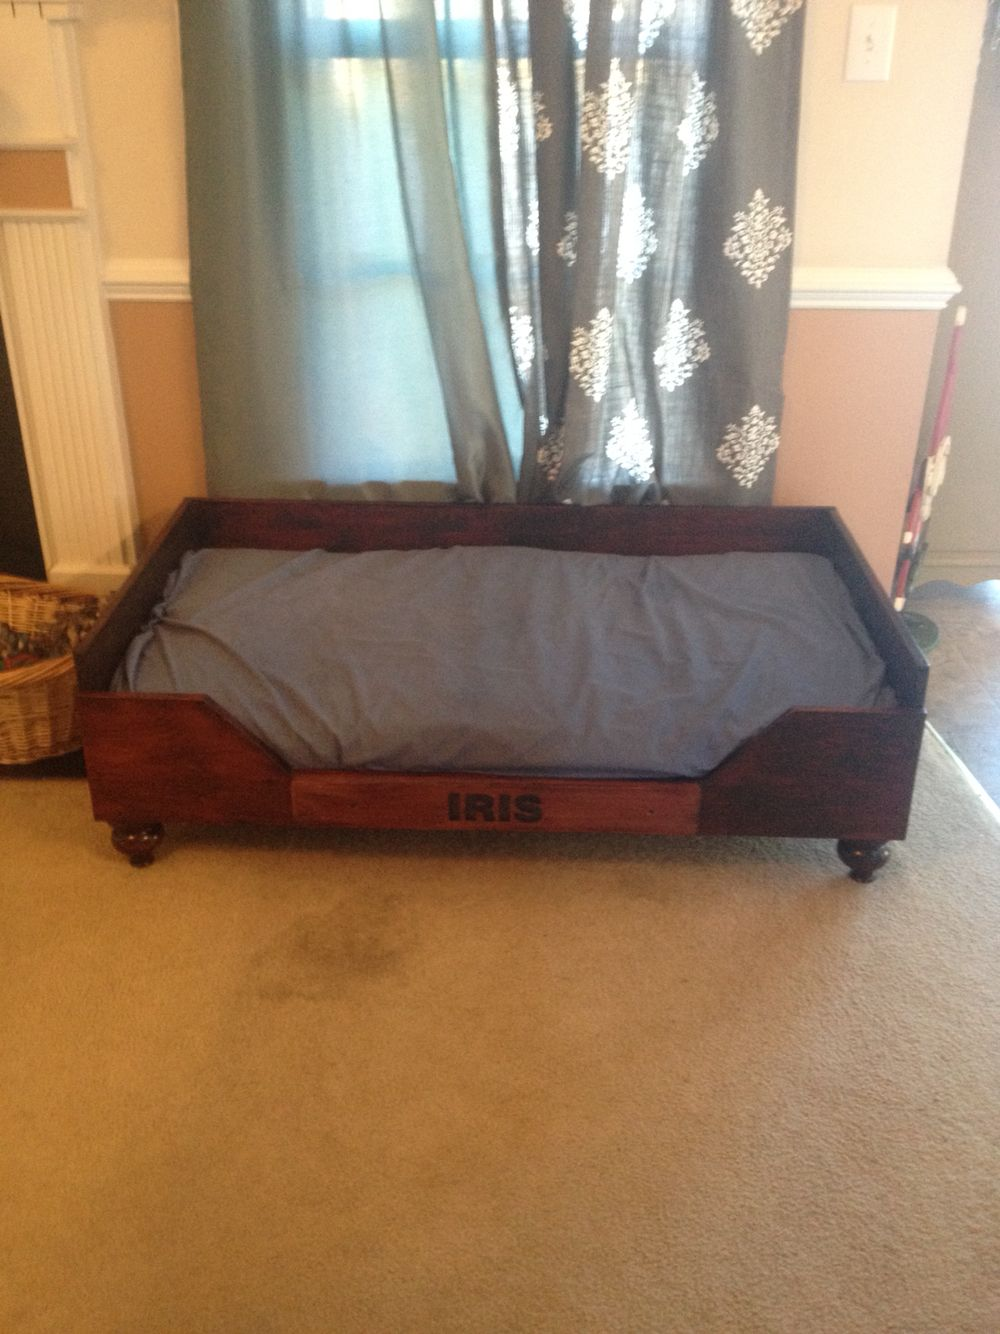 Dog Bed Mattress Is A Baby Crib Mattress Holds At Least A German